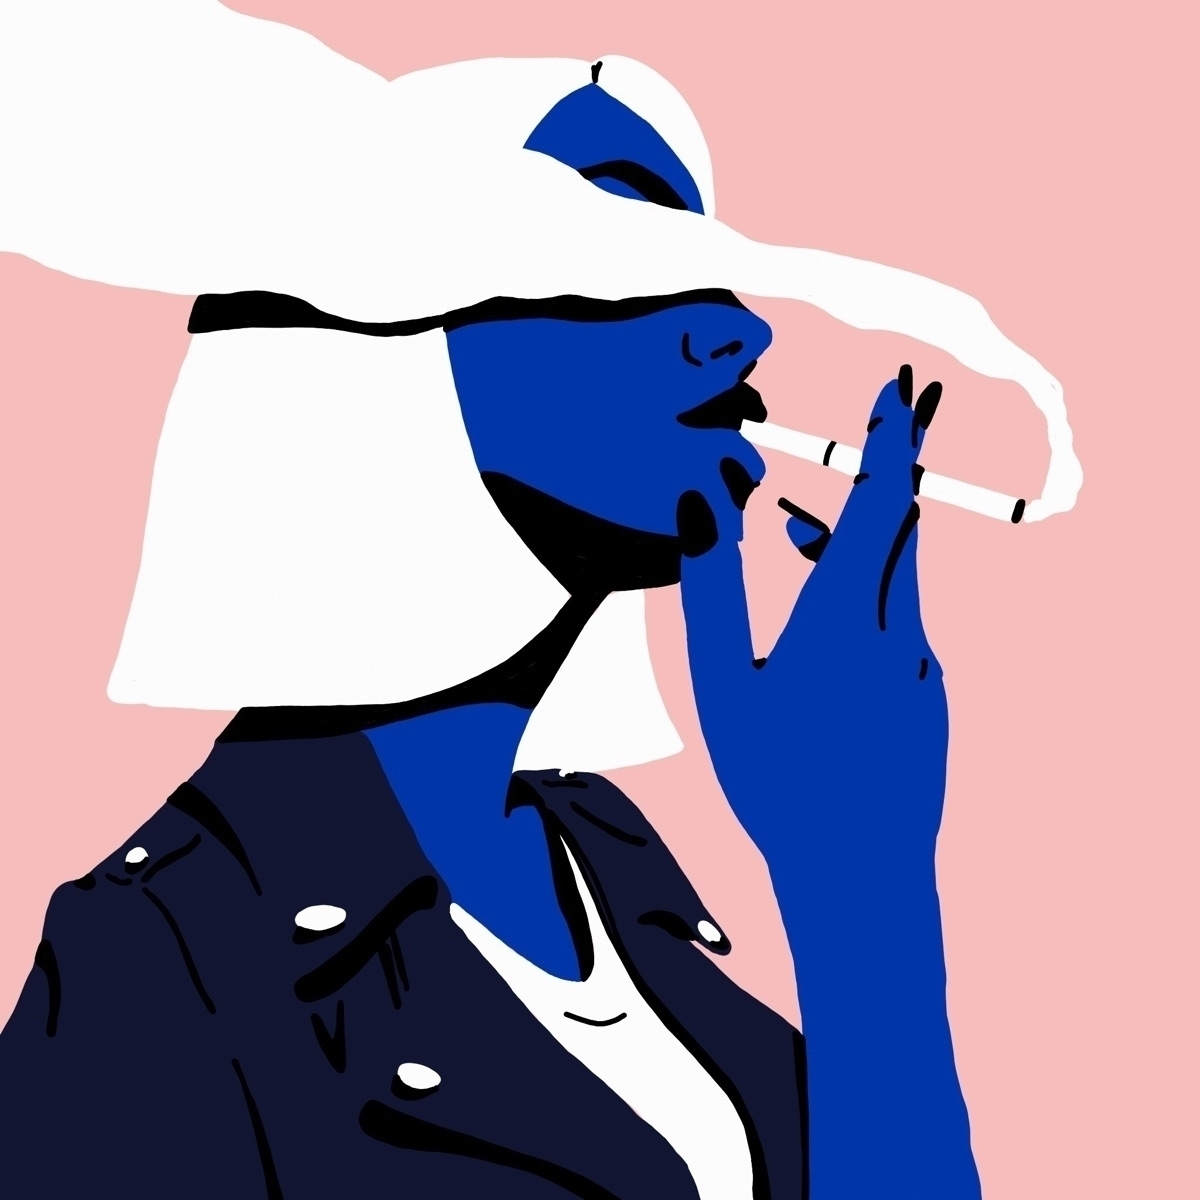 lunch break rebel - jordinblair | ello